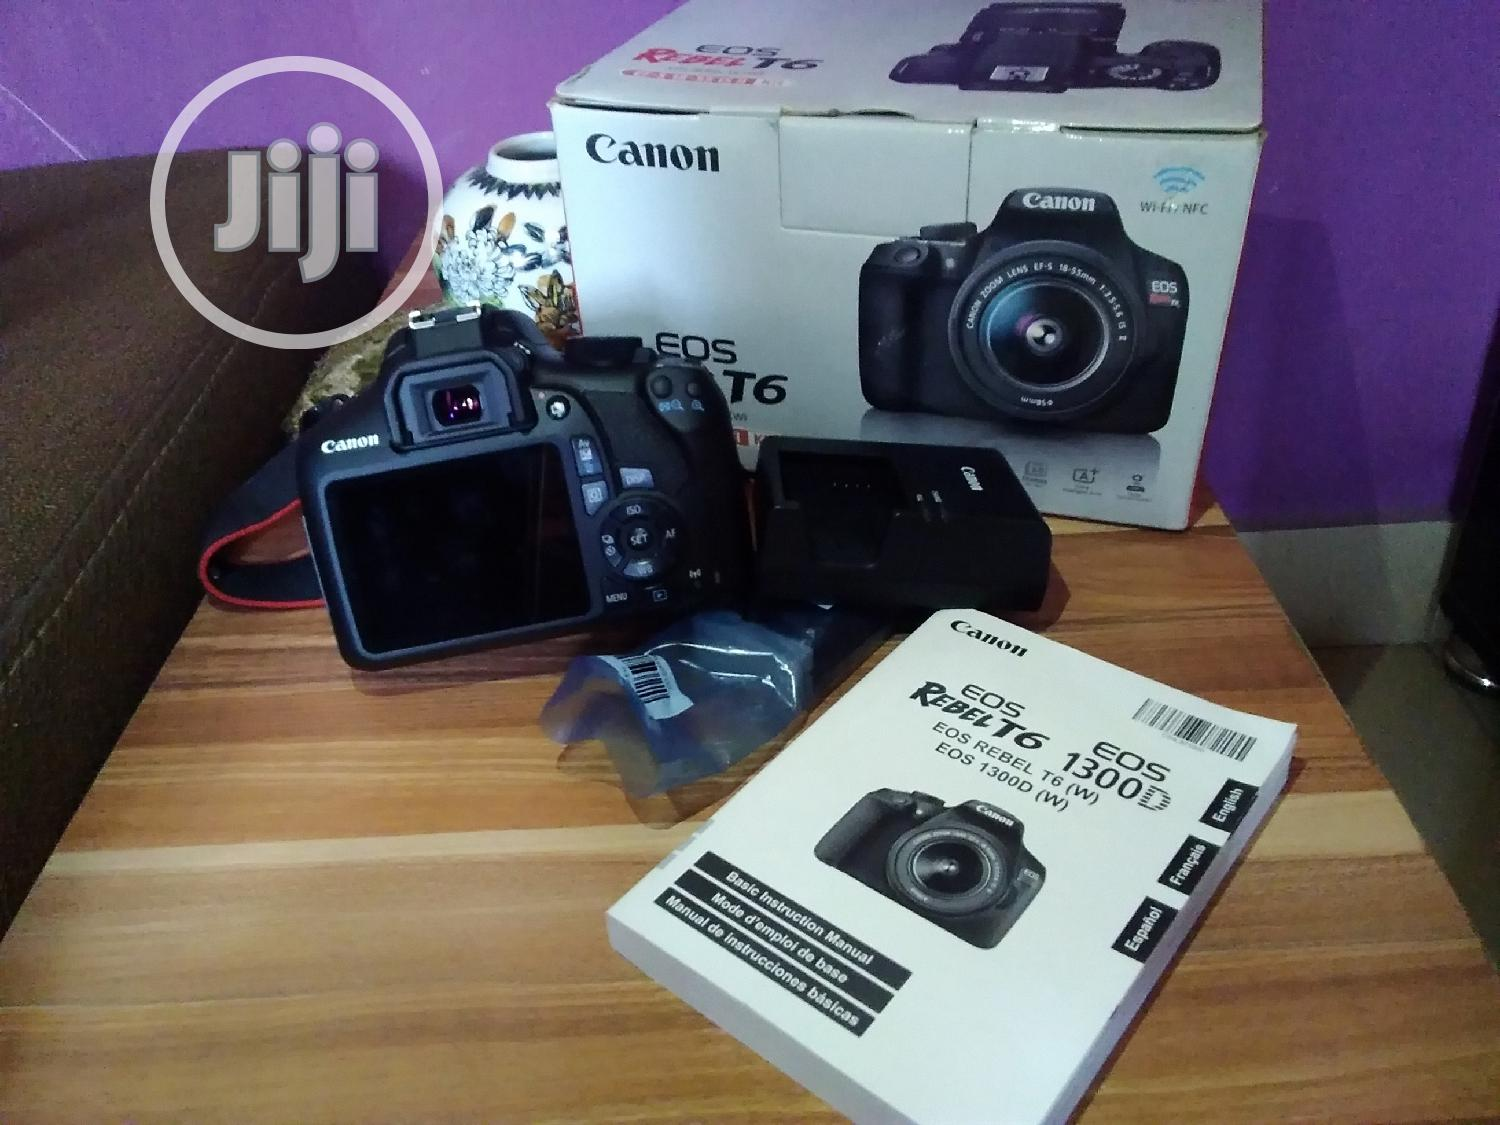 Canon EOS 1300D Rebel T6 Body Only